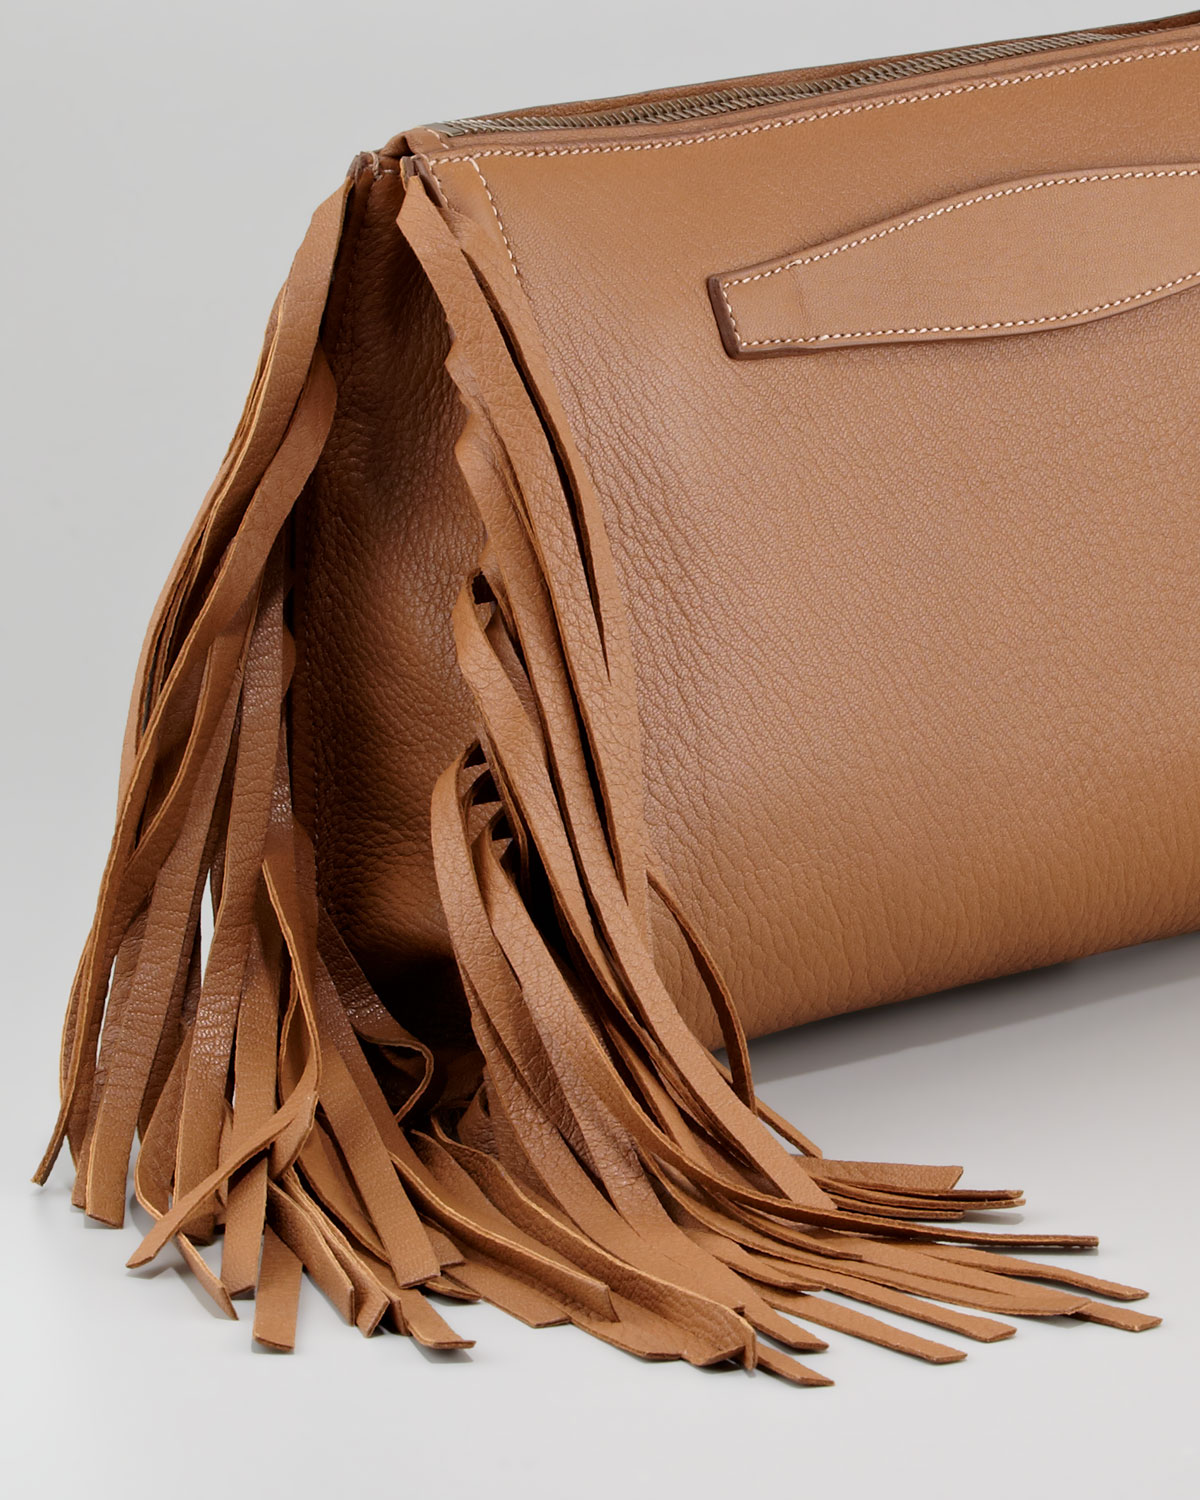 where to buy prada - Prada Cervo Fringe Clutch Bag in Brown (dark camel) | Lyst